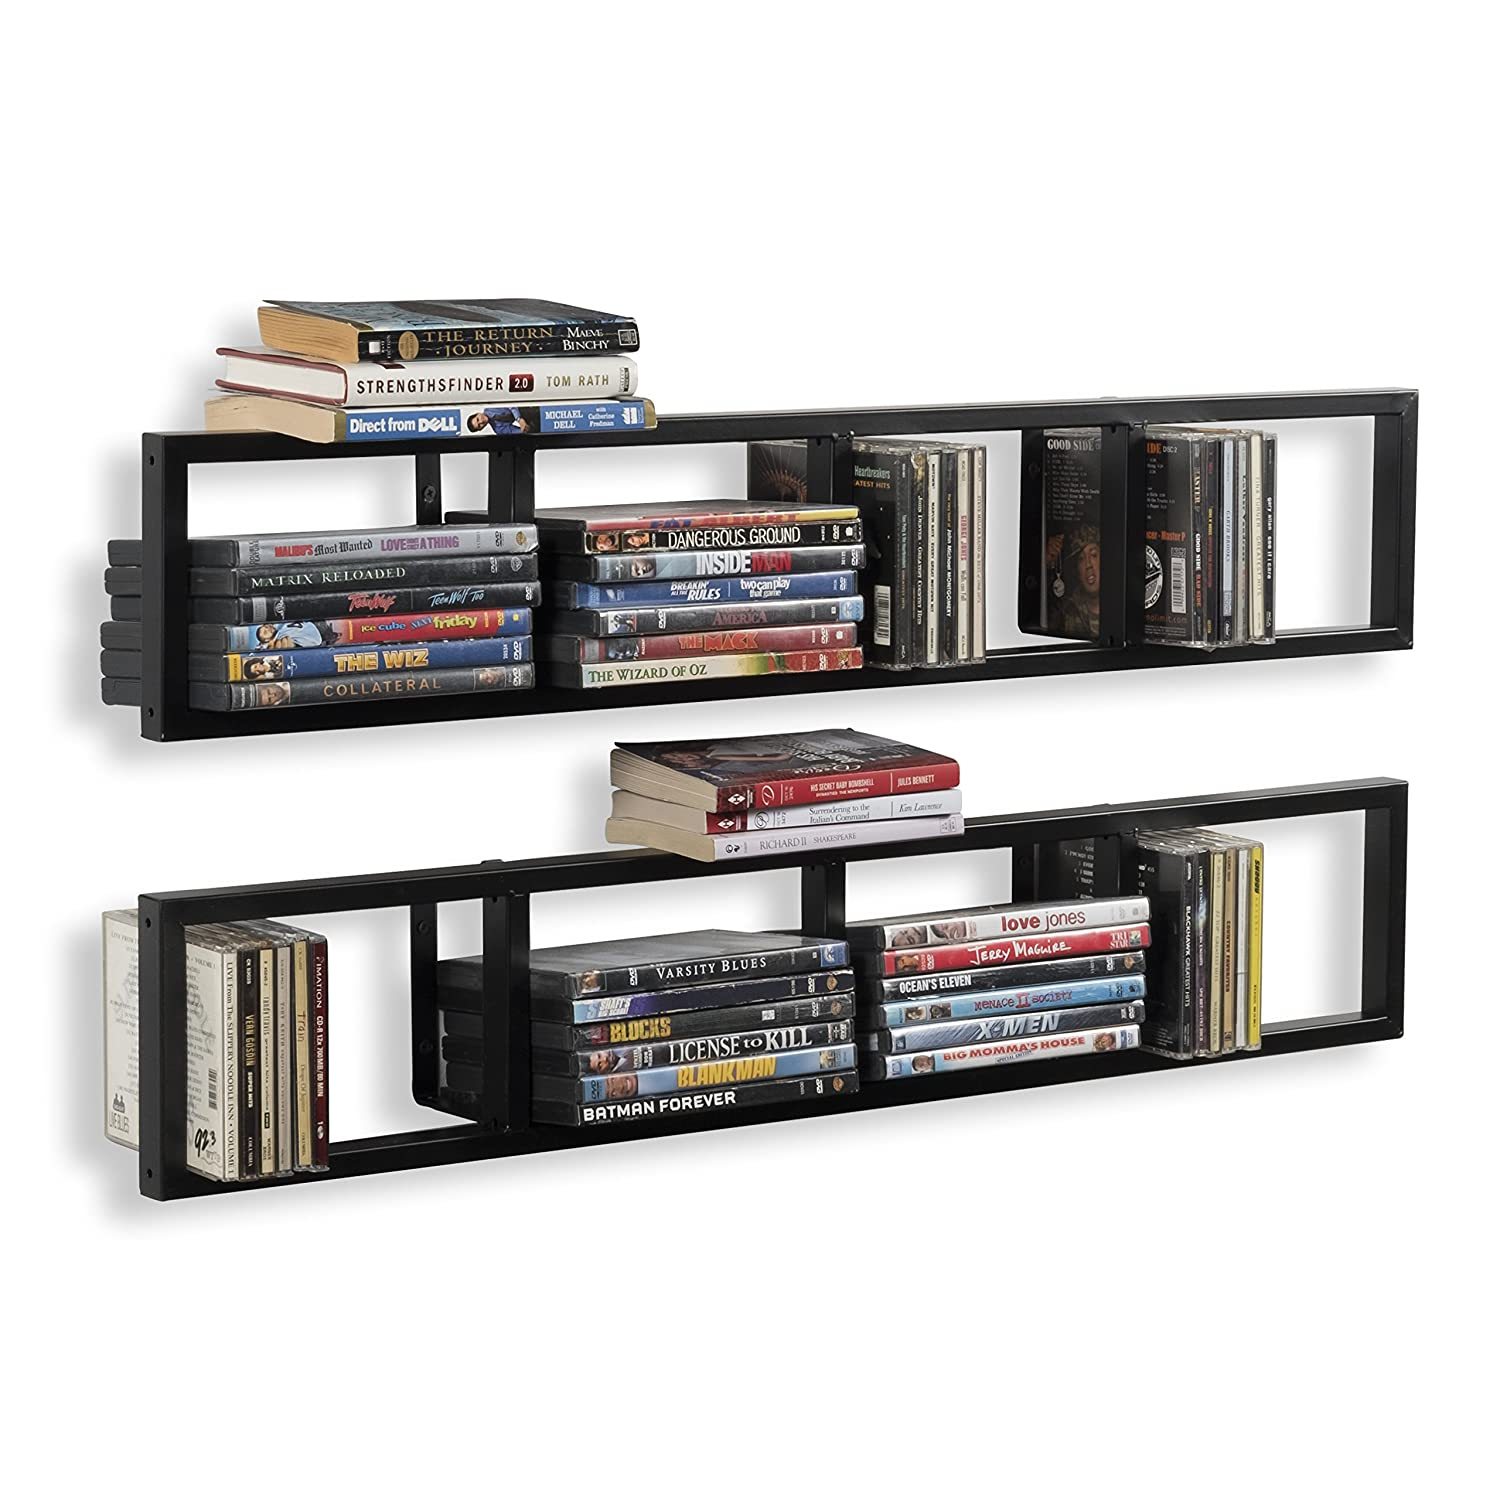 Charmant Wall Mount 34 Inch Media Storage Rack CD DVD Organizer Metal Floating Shelf  Set Of 2